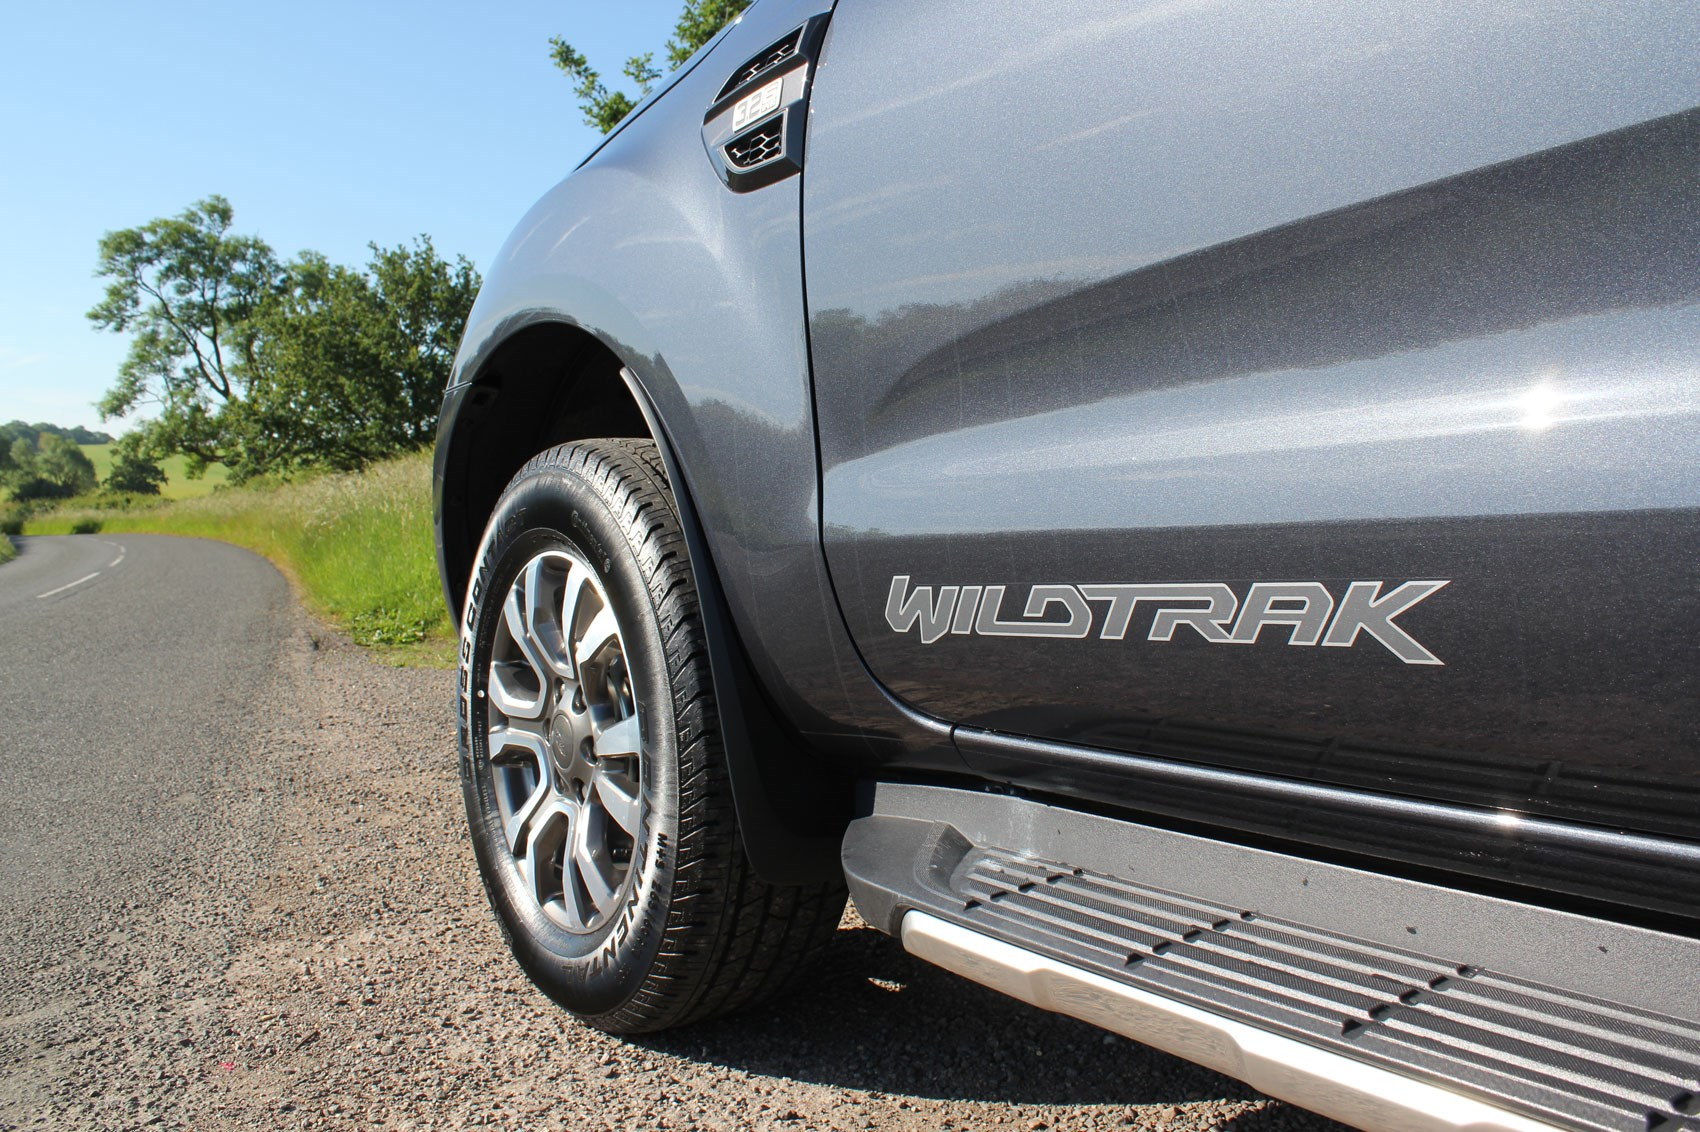 Ford Ranger Wildtrak Euro 6 review - dark grey, side graphics